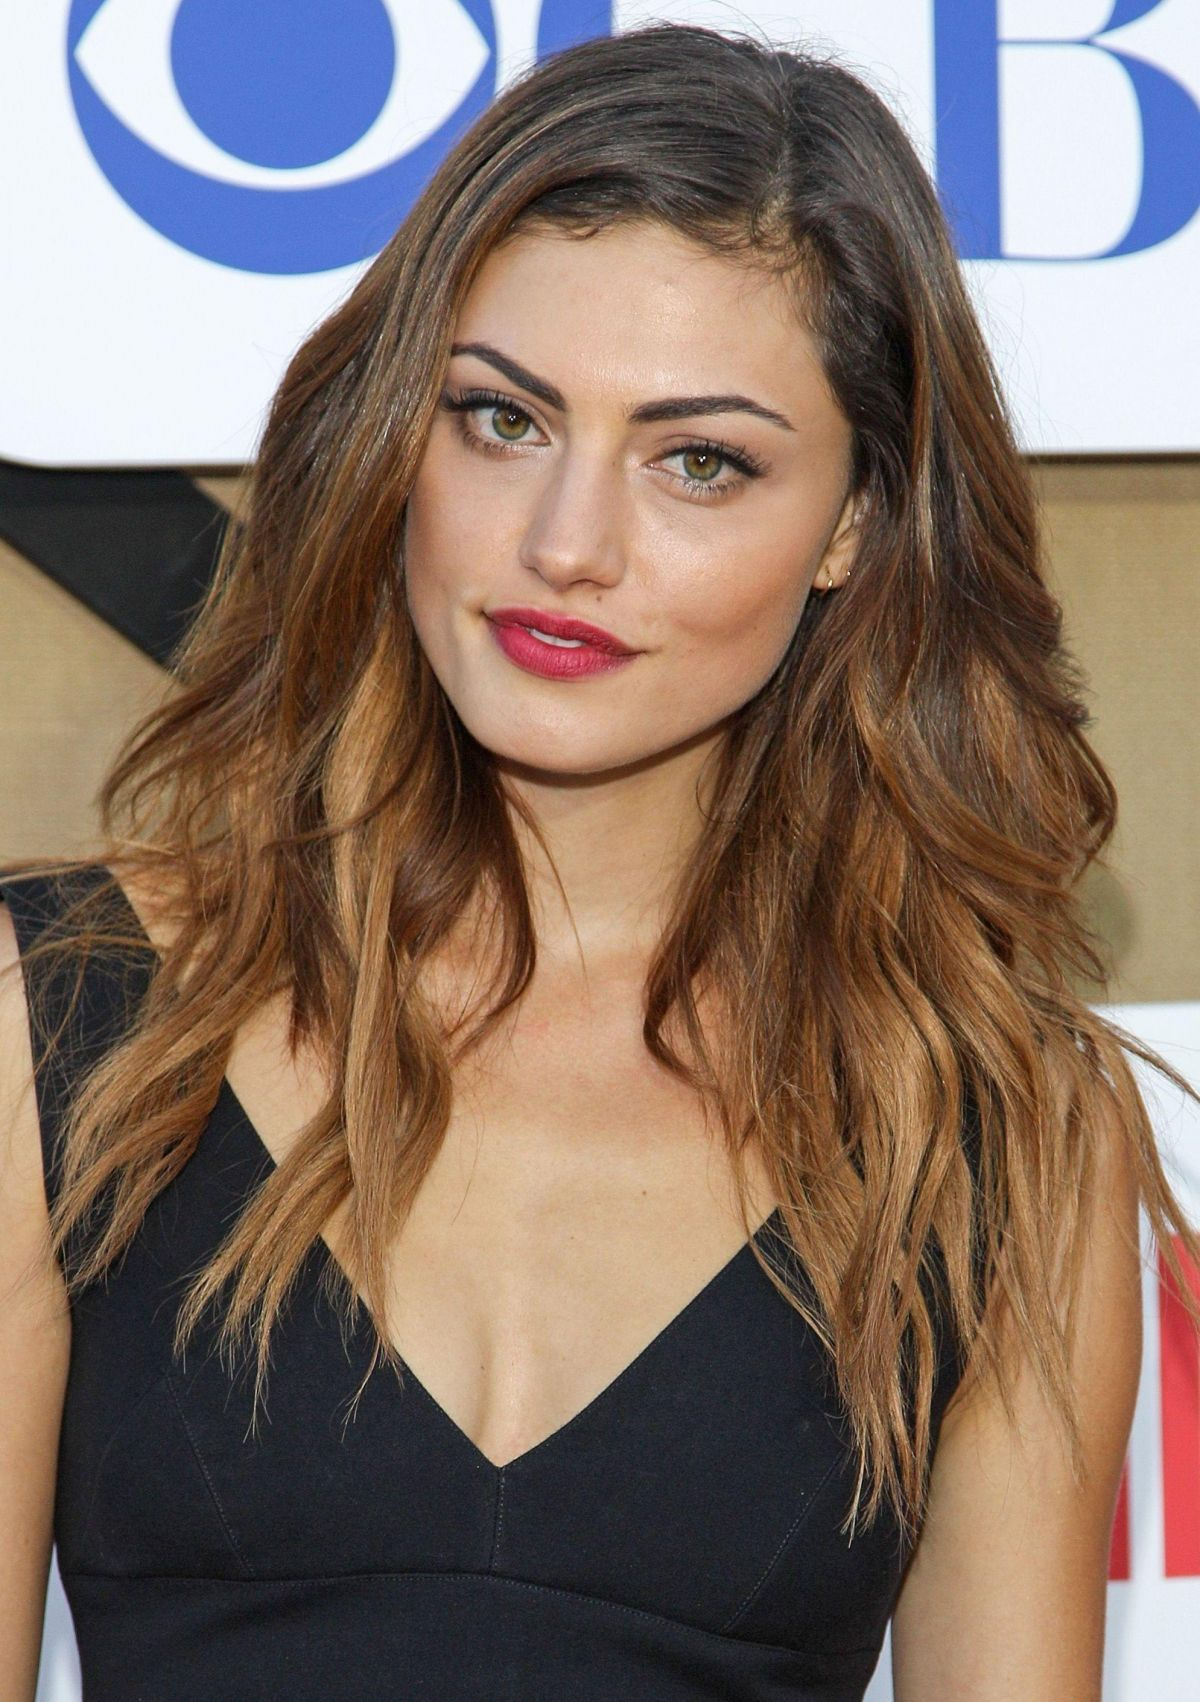 Hayley Images Phoebe Tonkin Hd Wallpaper And Background